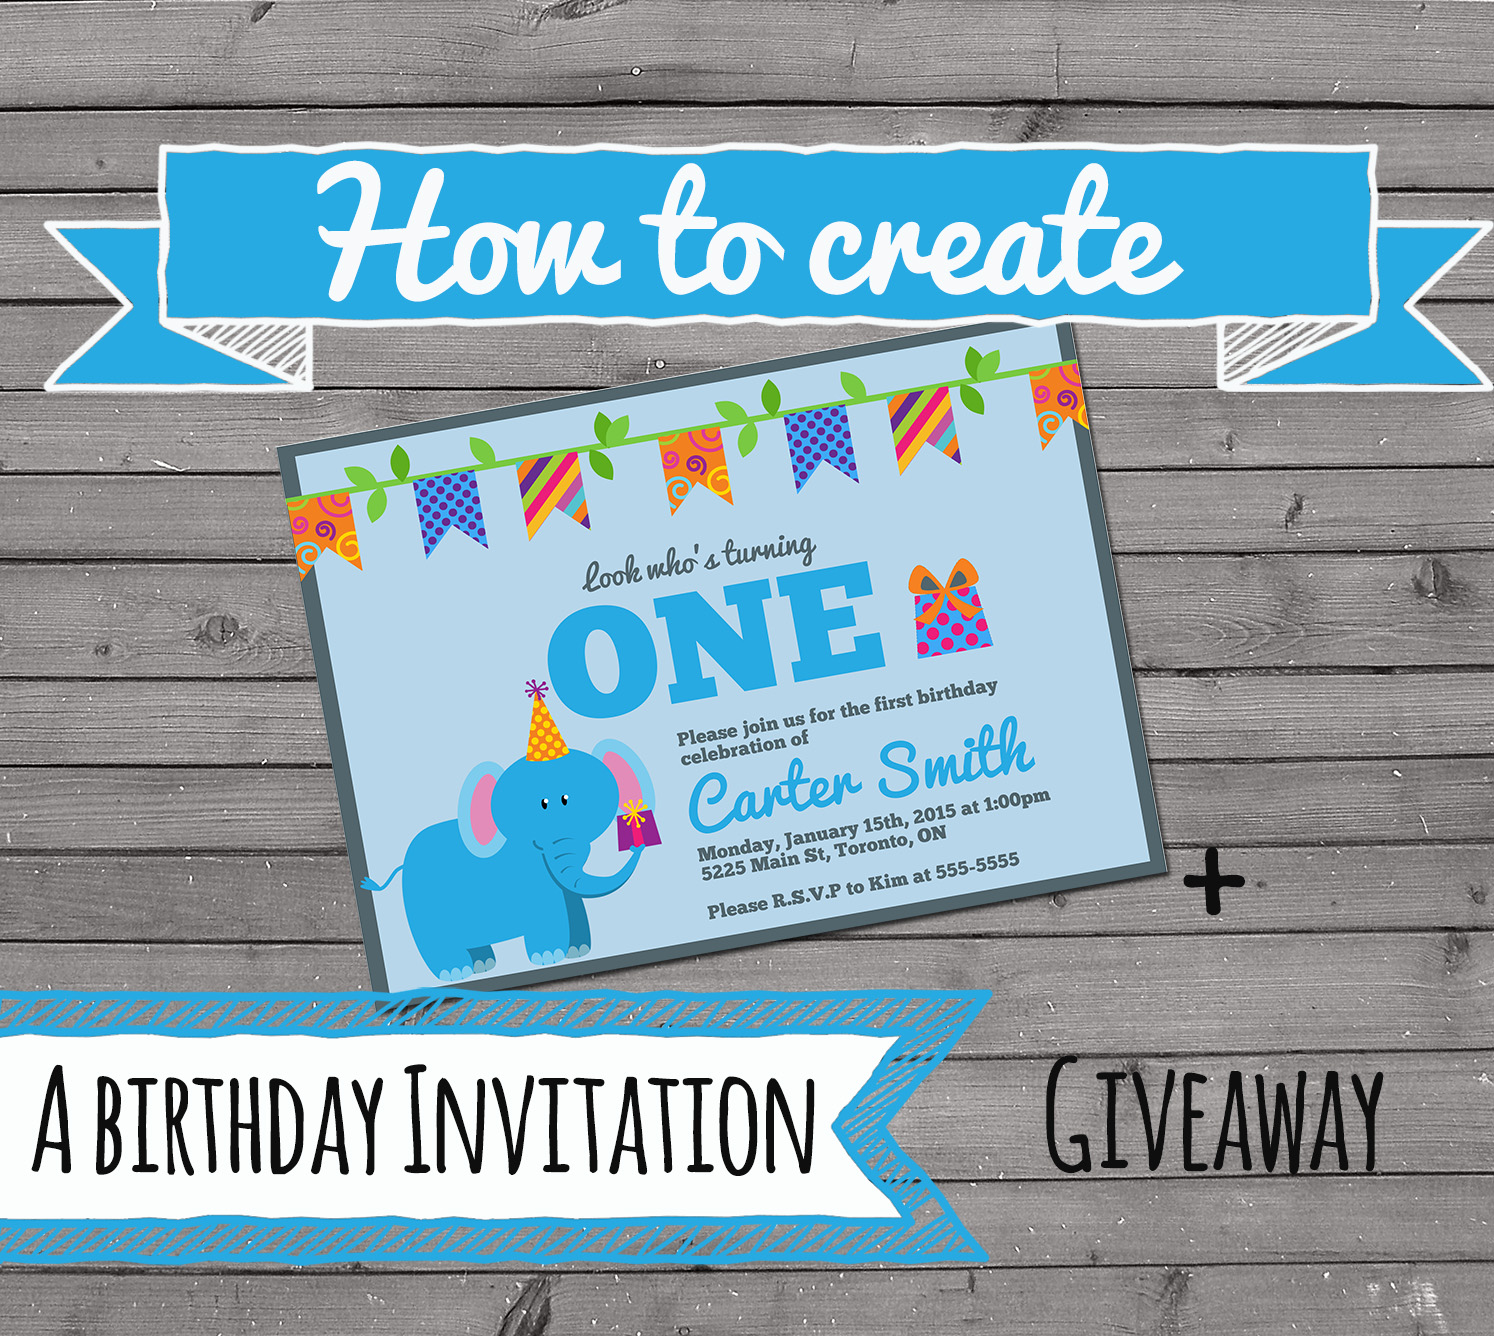 How To Create An Invitation The Best